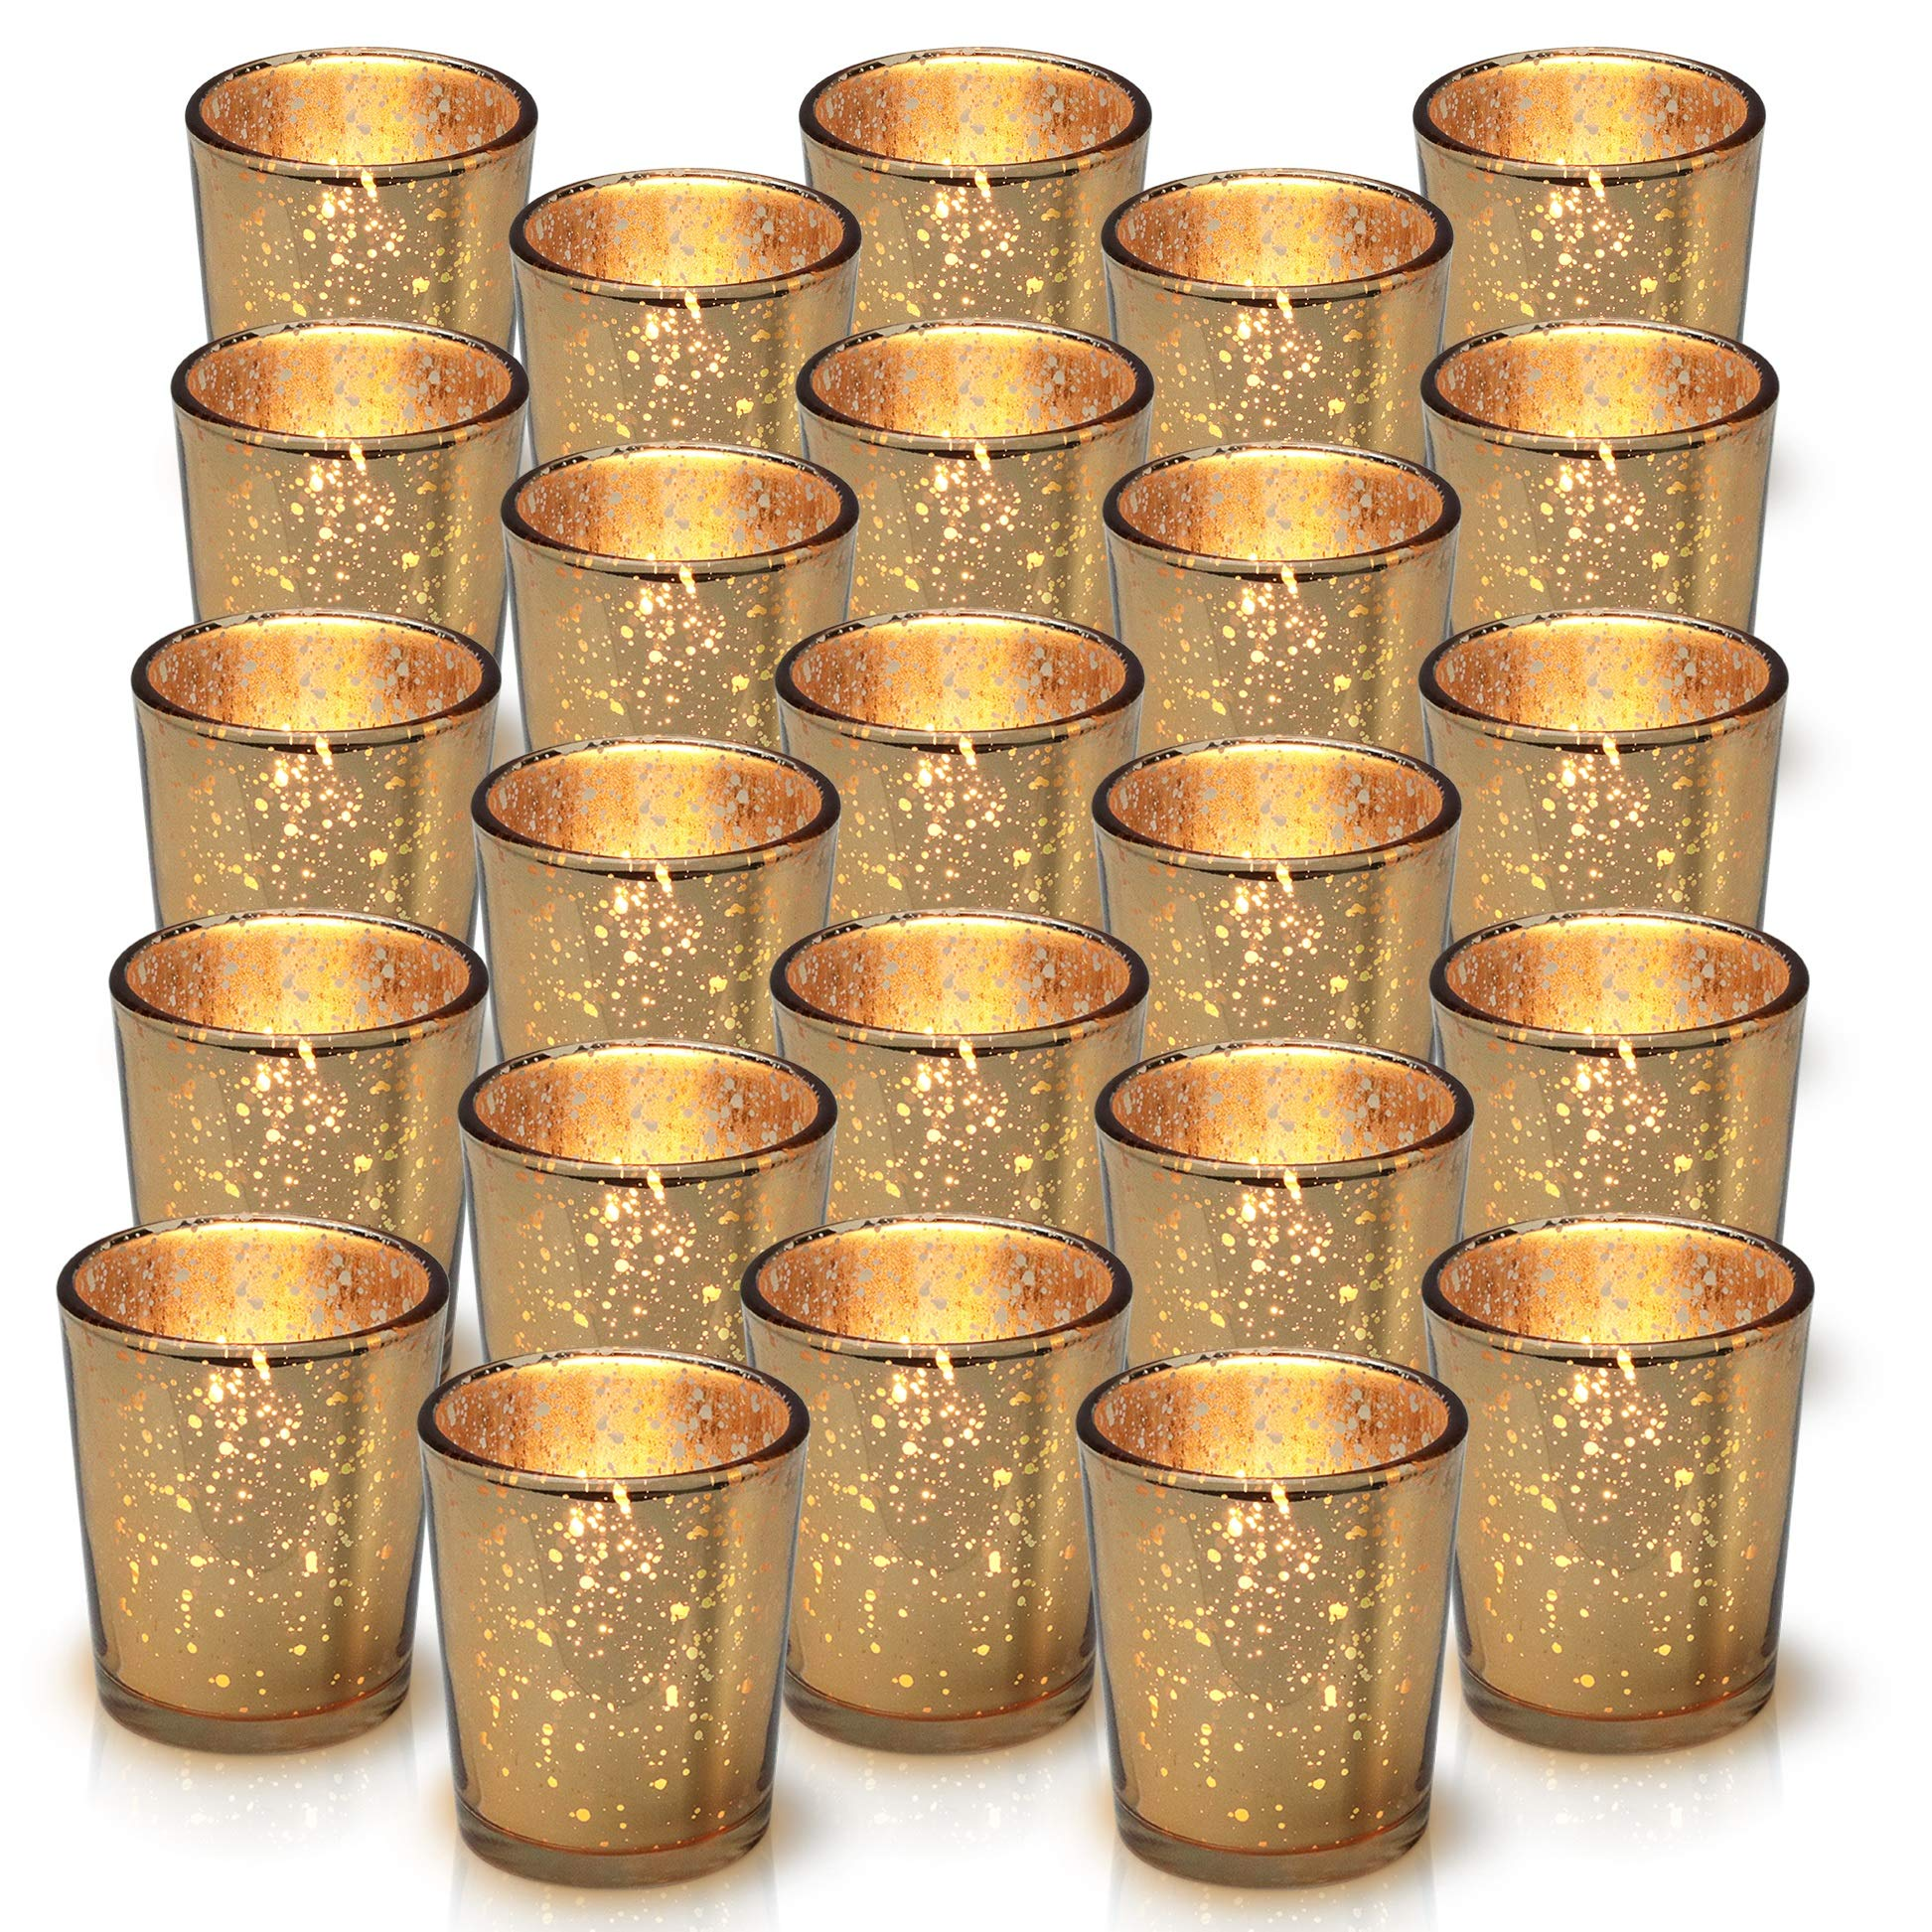 cbb1be0f68964 Details about Granrosi Gold Mercury Votive Candle Holder Set of 25 - Made  of Mercury Glass